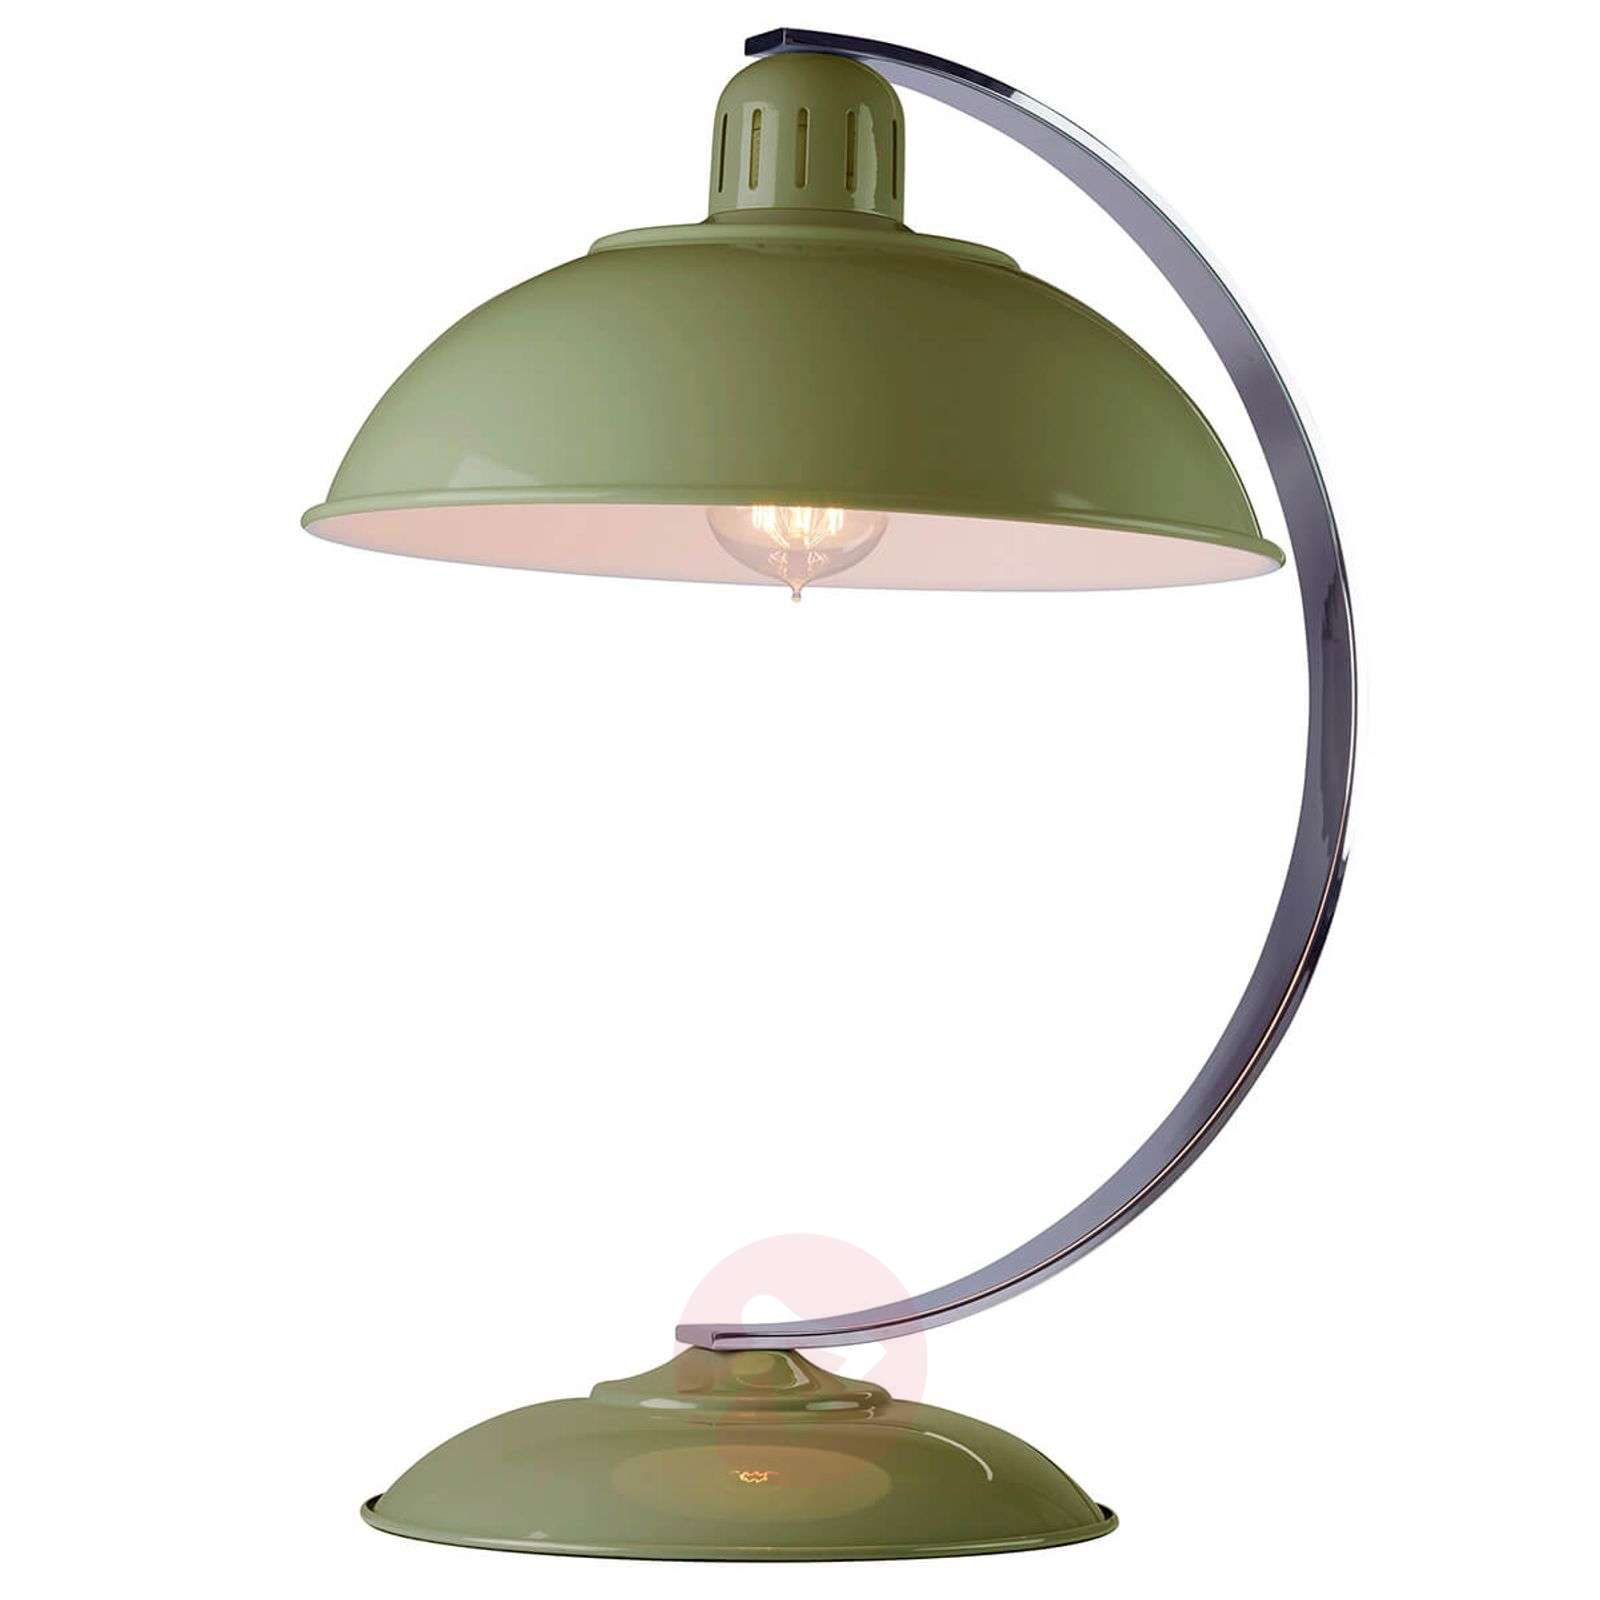 Table lamp Franklin green painted-3048779-01